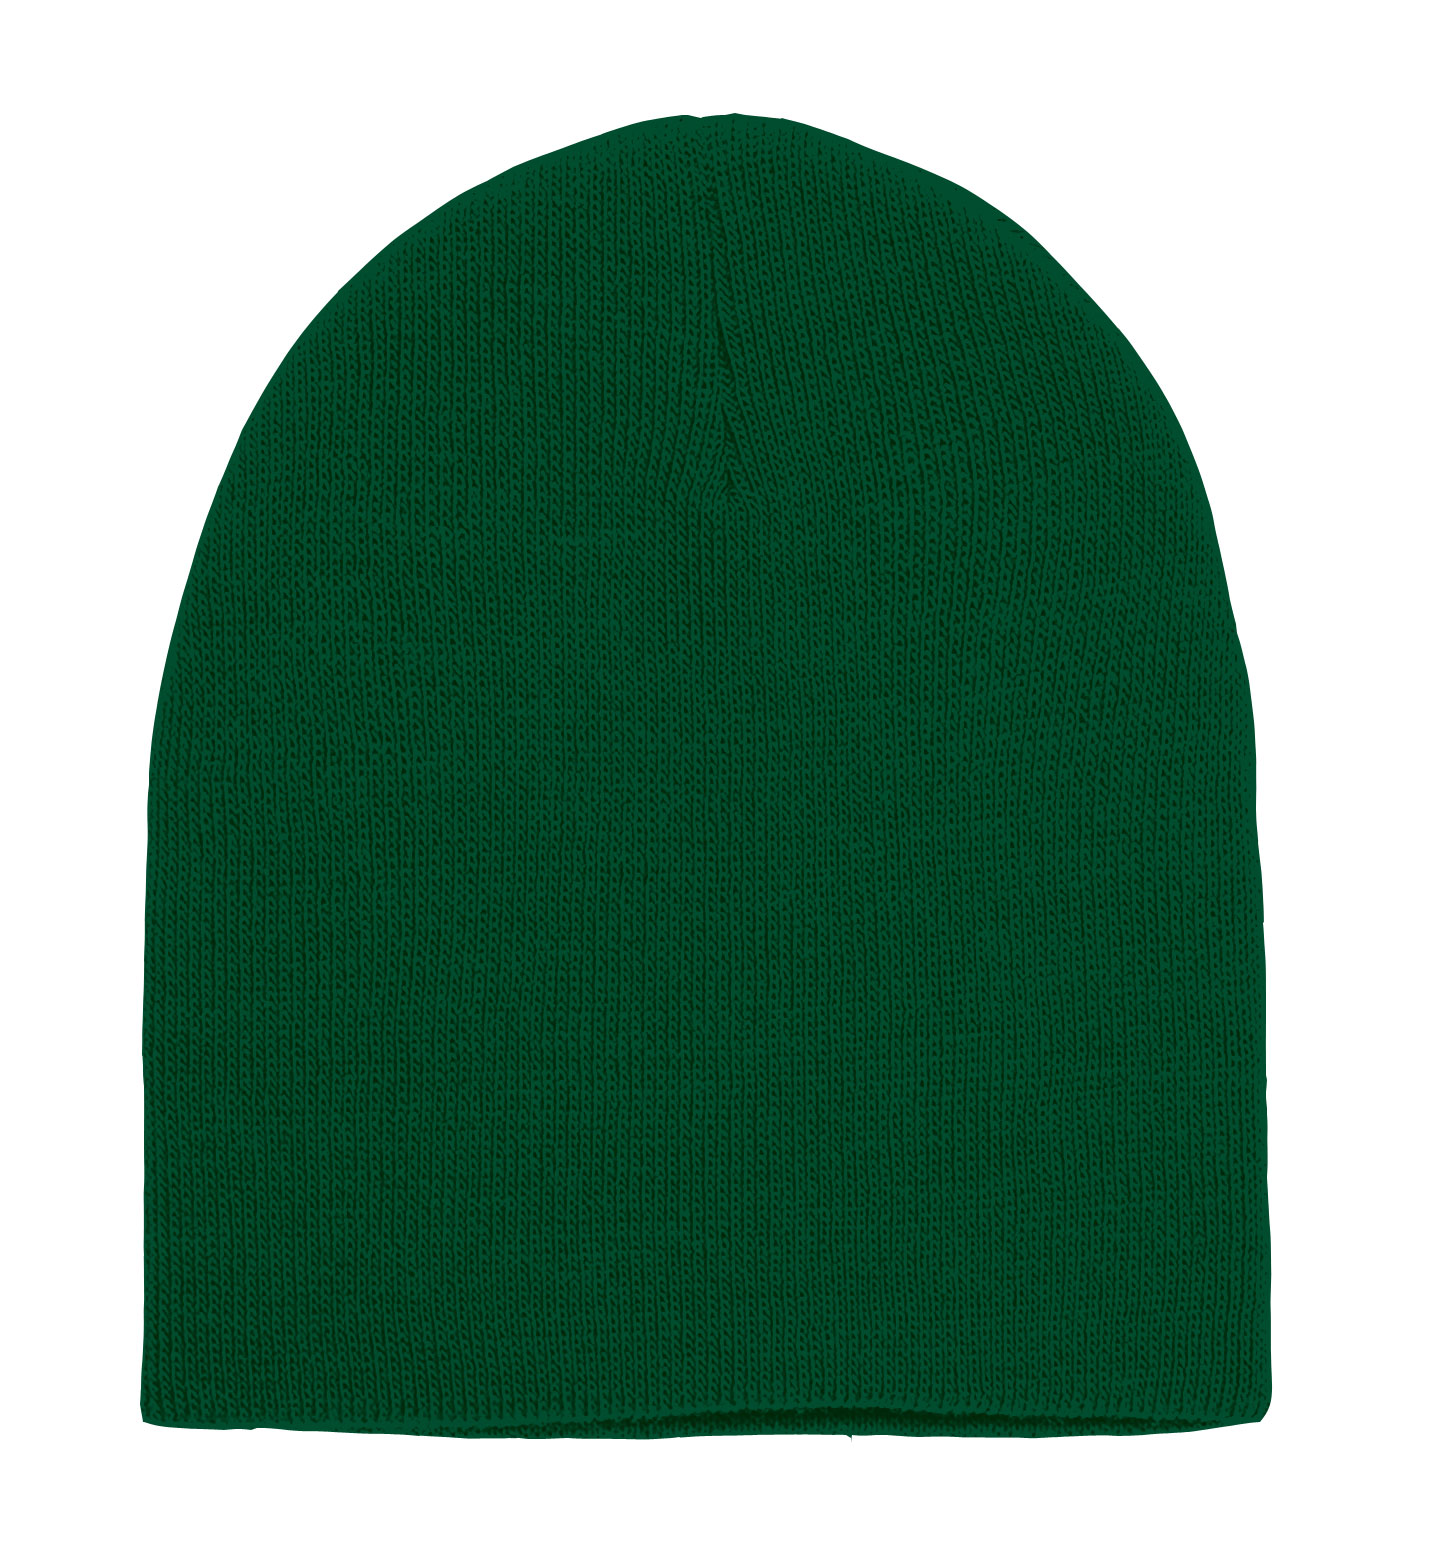 Yupoong Heavyweight Custom Knit Cap